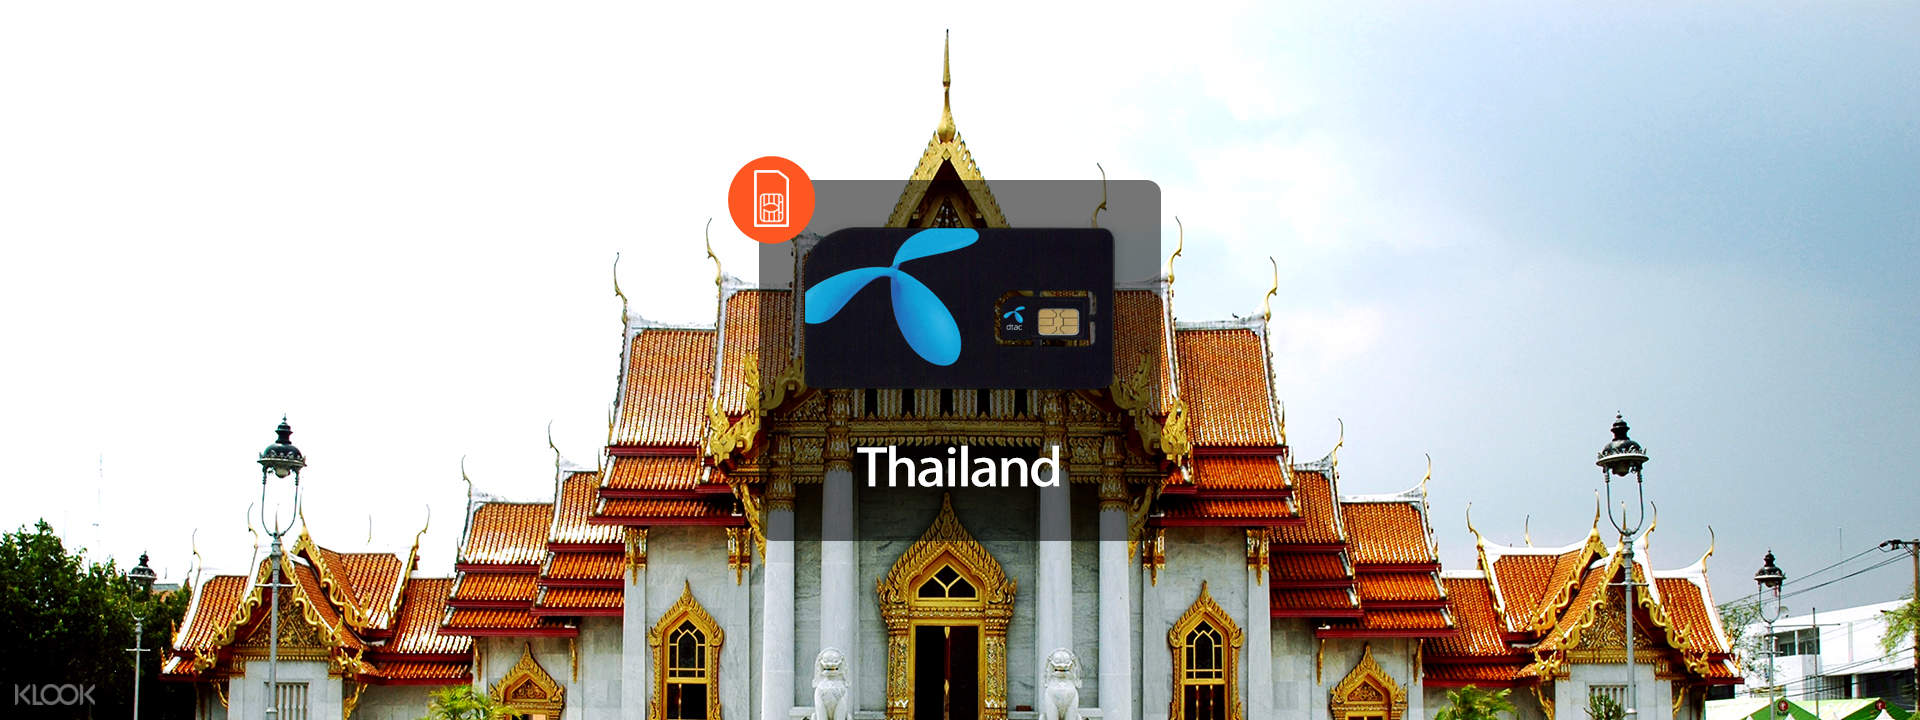 3G/4G SIM Card (HKG Pick Up) for Thailand - Klook